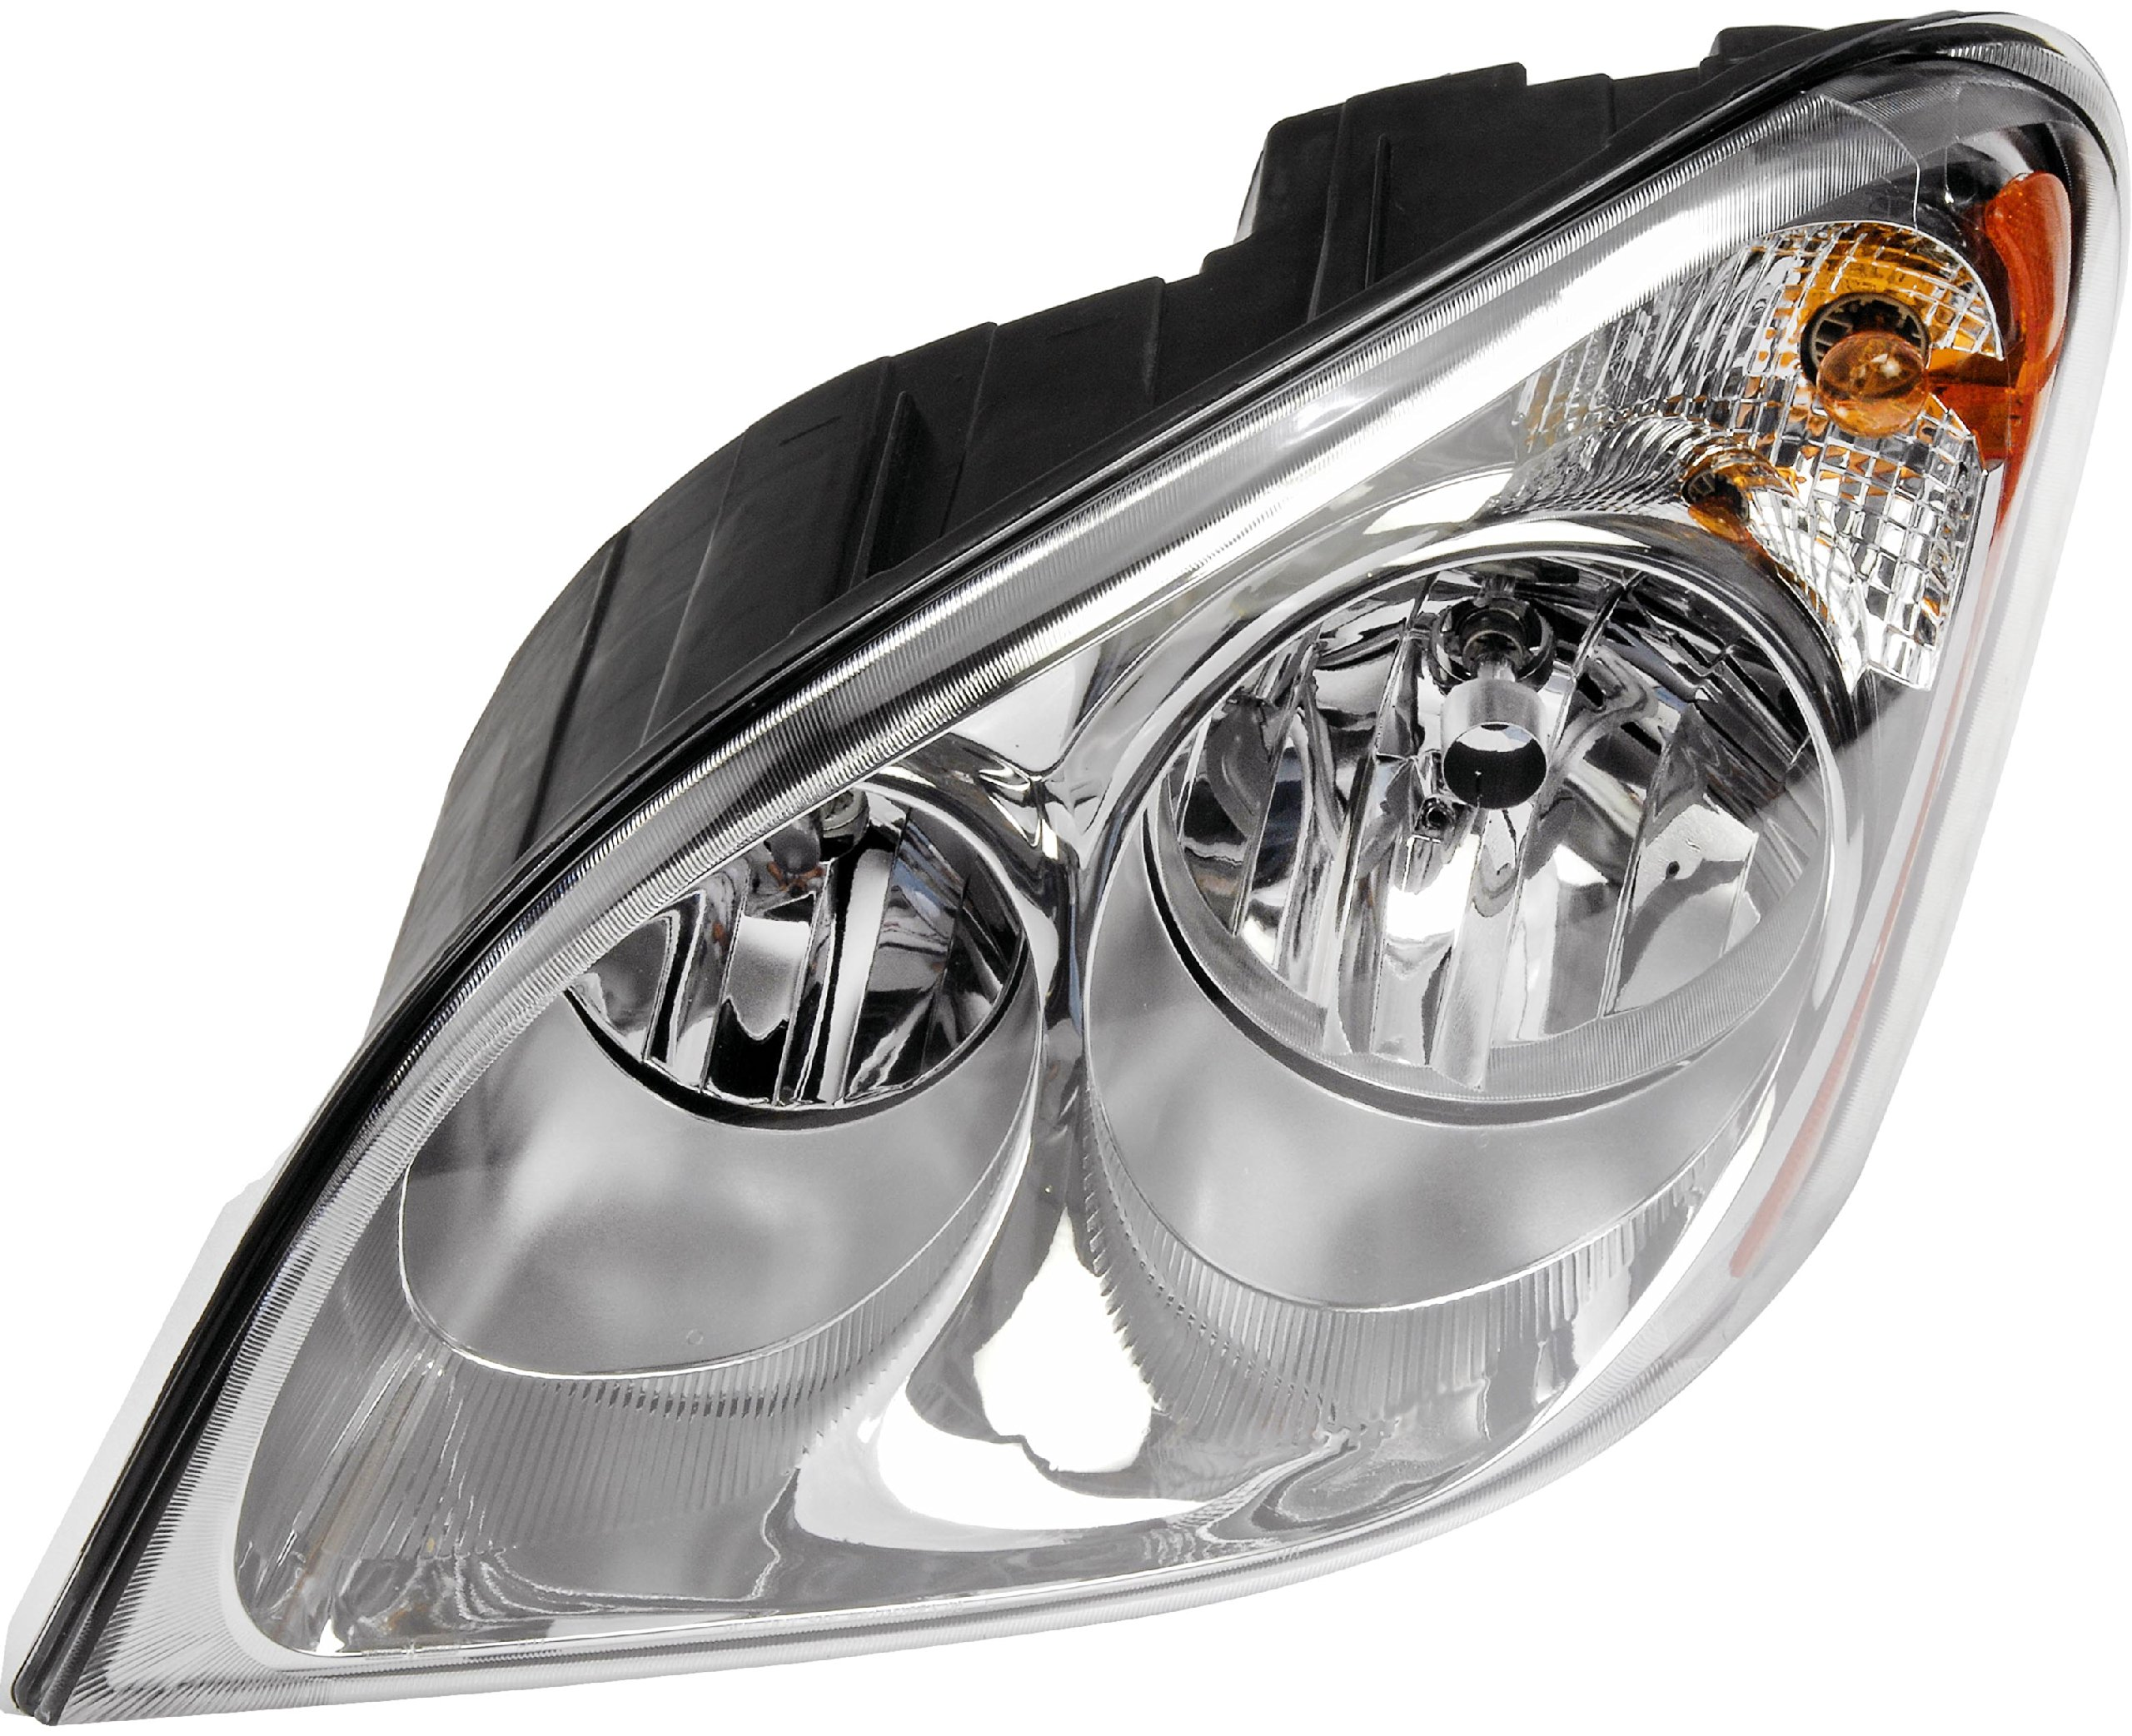 Dorman 888-5206 Driver Side Headlight Assembly For Select Freightliner Models by Dorman